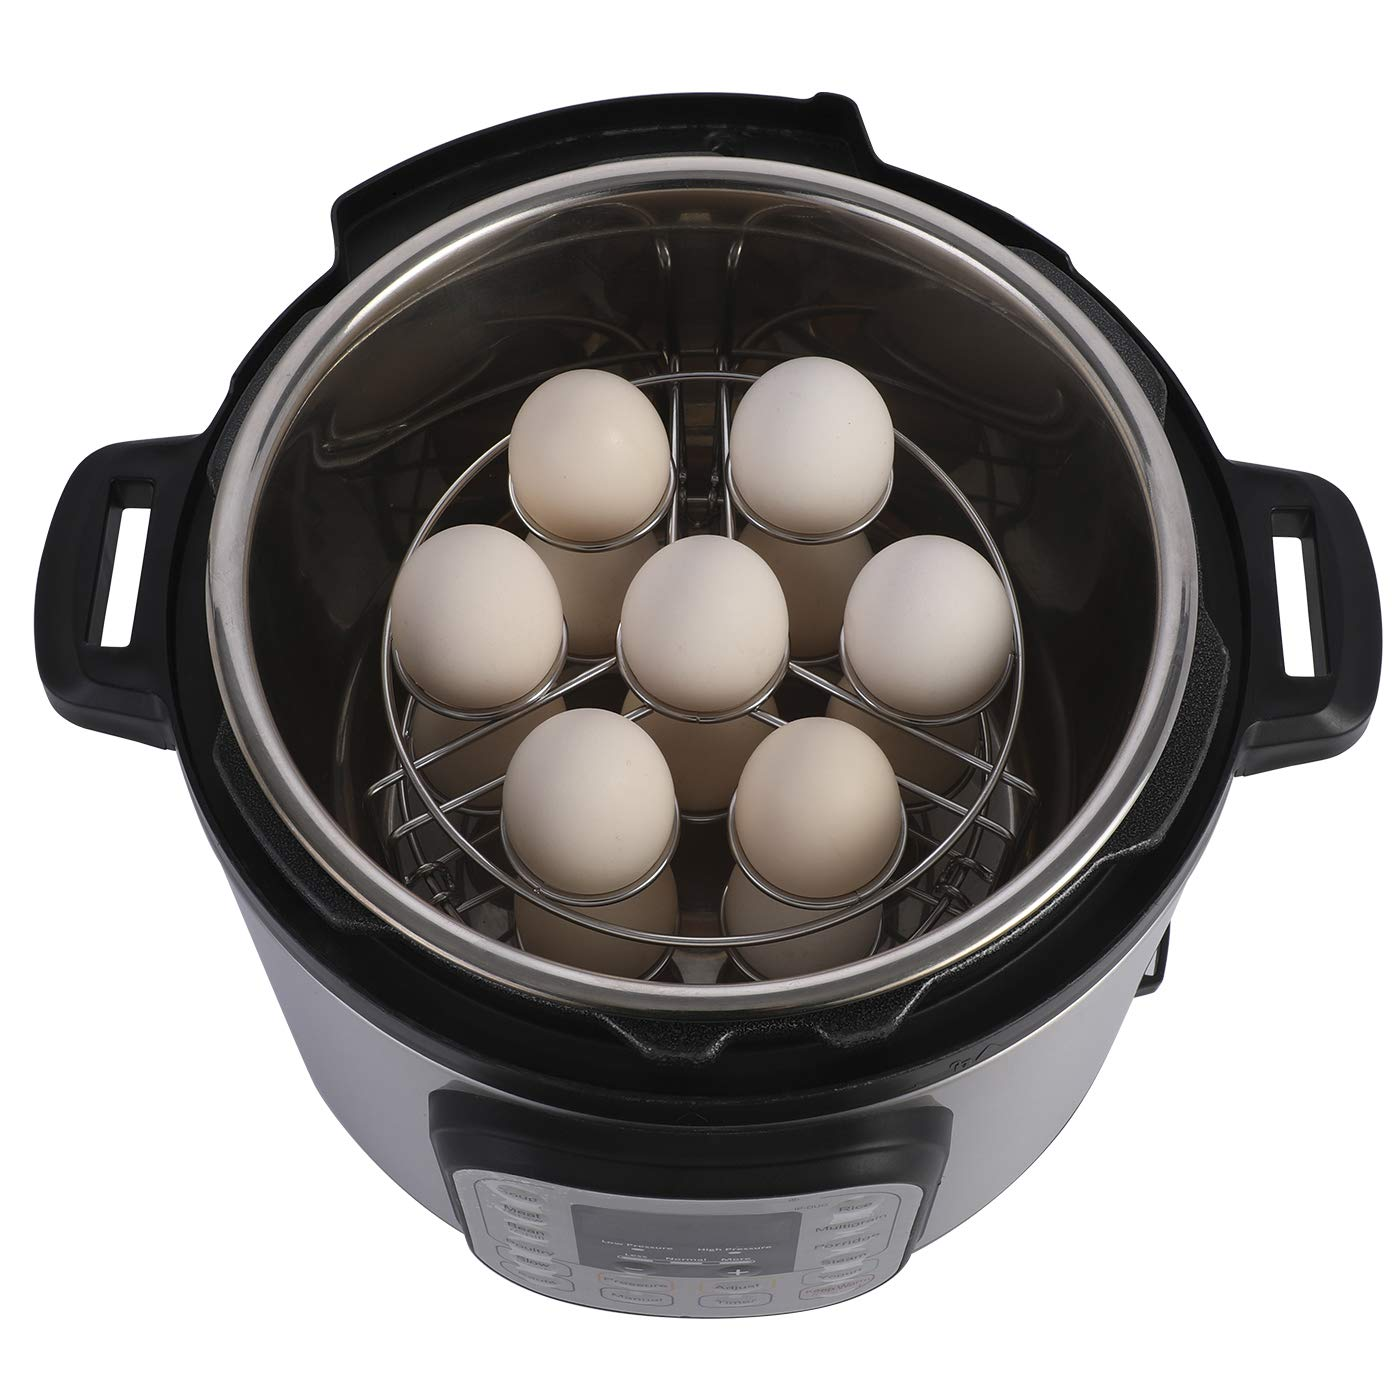 Aozita Stackable Egg Steamer Rack Trivet for Instant Pot Accessories - Fits 5,6,8 qt Pressure Cooker - 2 Pack Stainless Steel Multipurpose Rack by Aozita (Image #5)